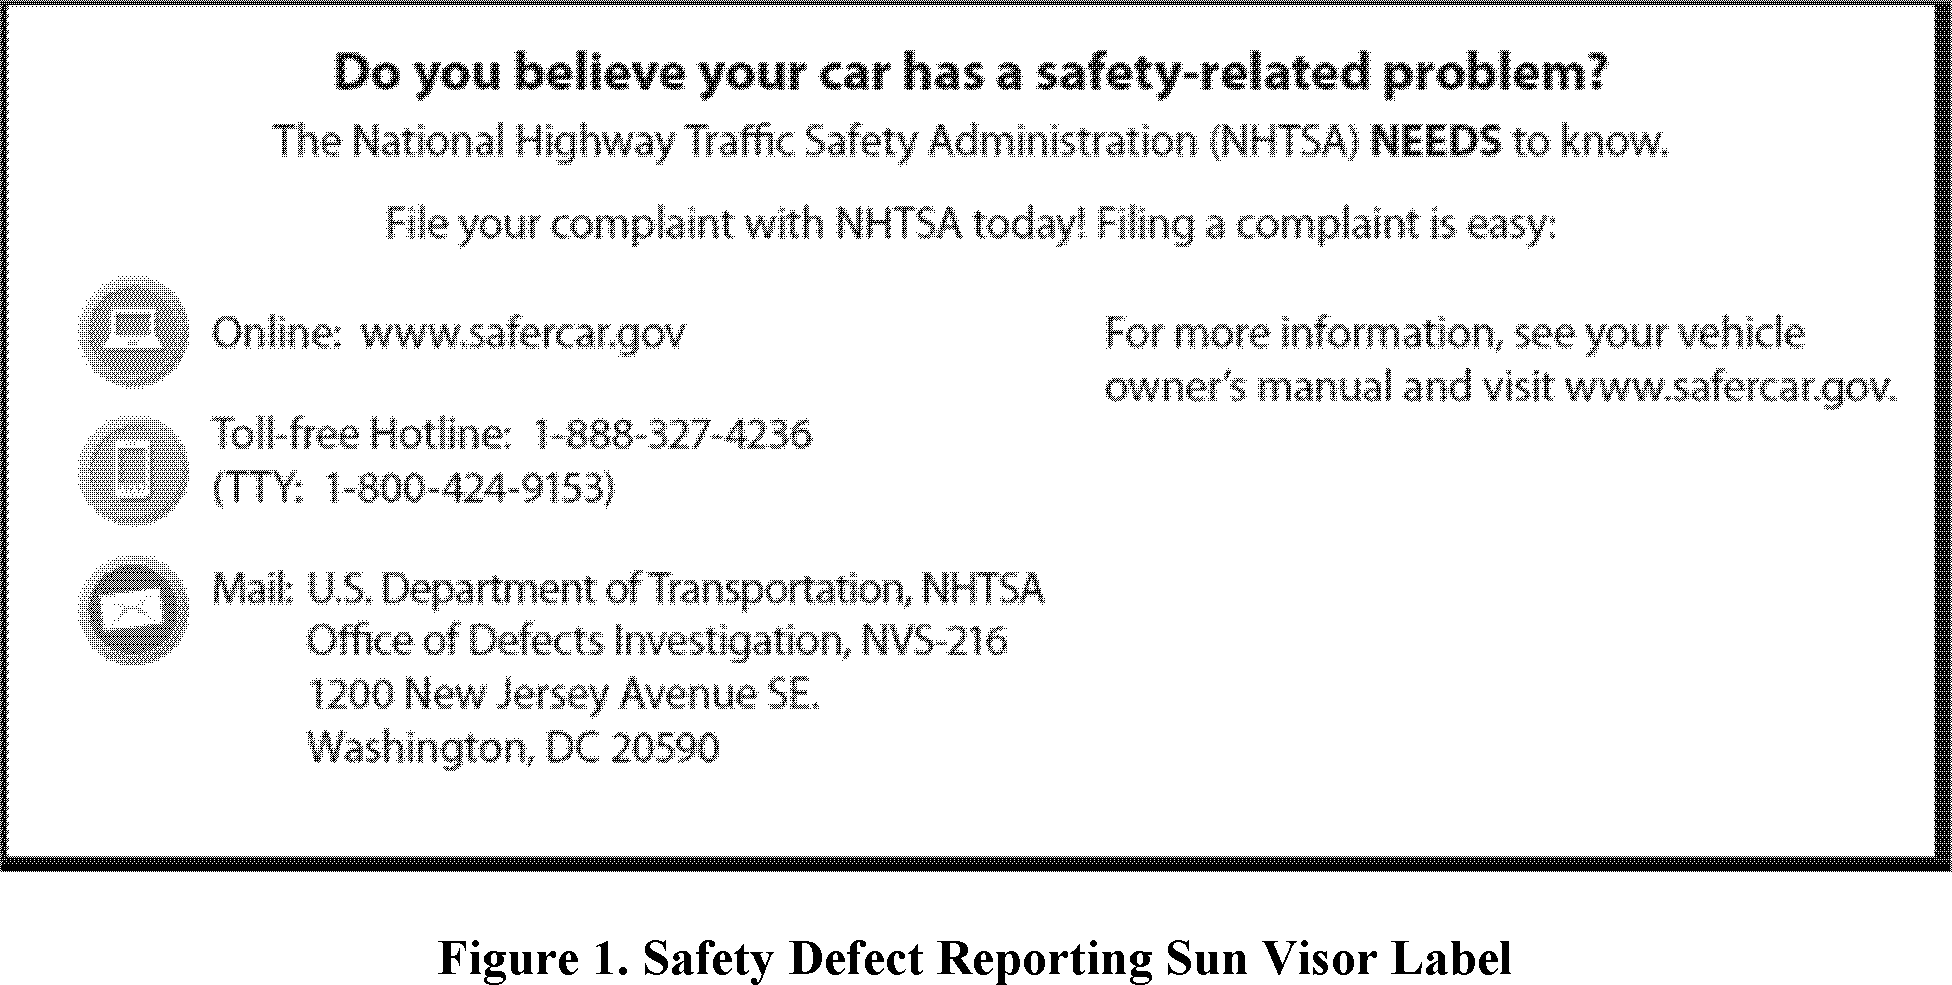 NHTSA seeks comments on the proposed design of the label, including the  current recommendation to keep the label in black and white without  additional ...